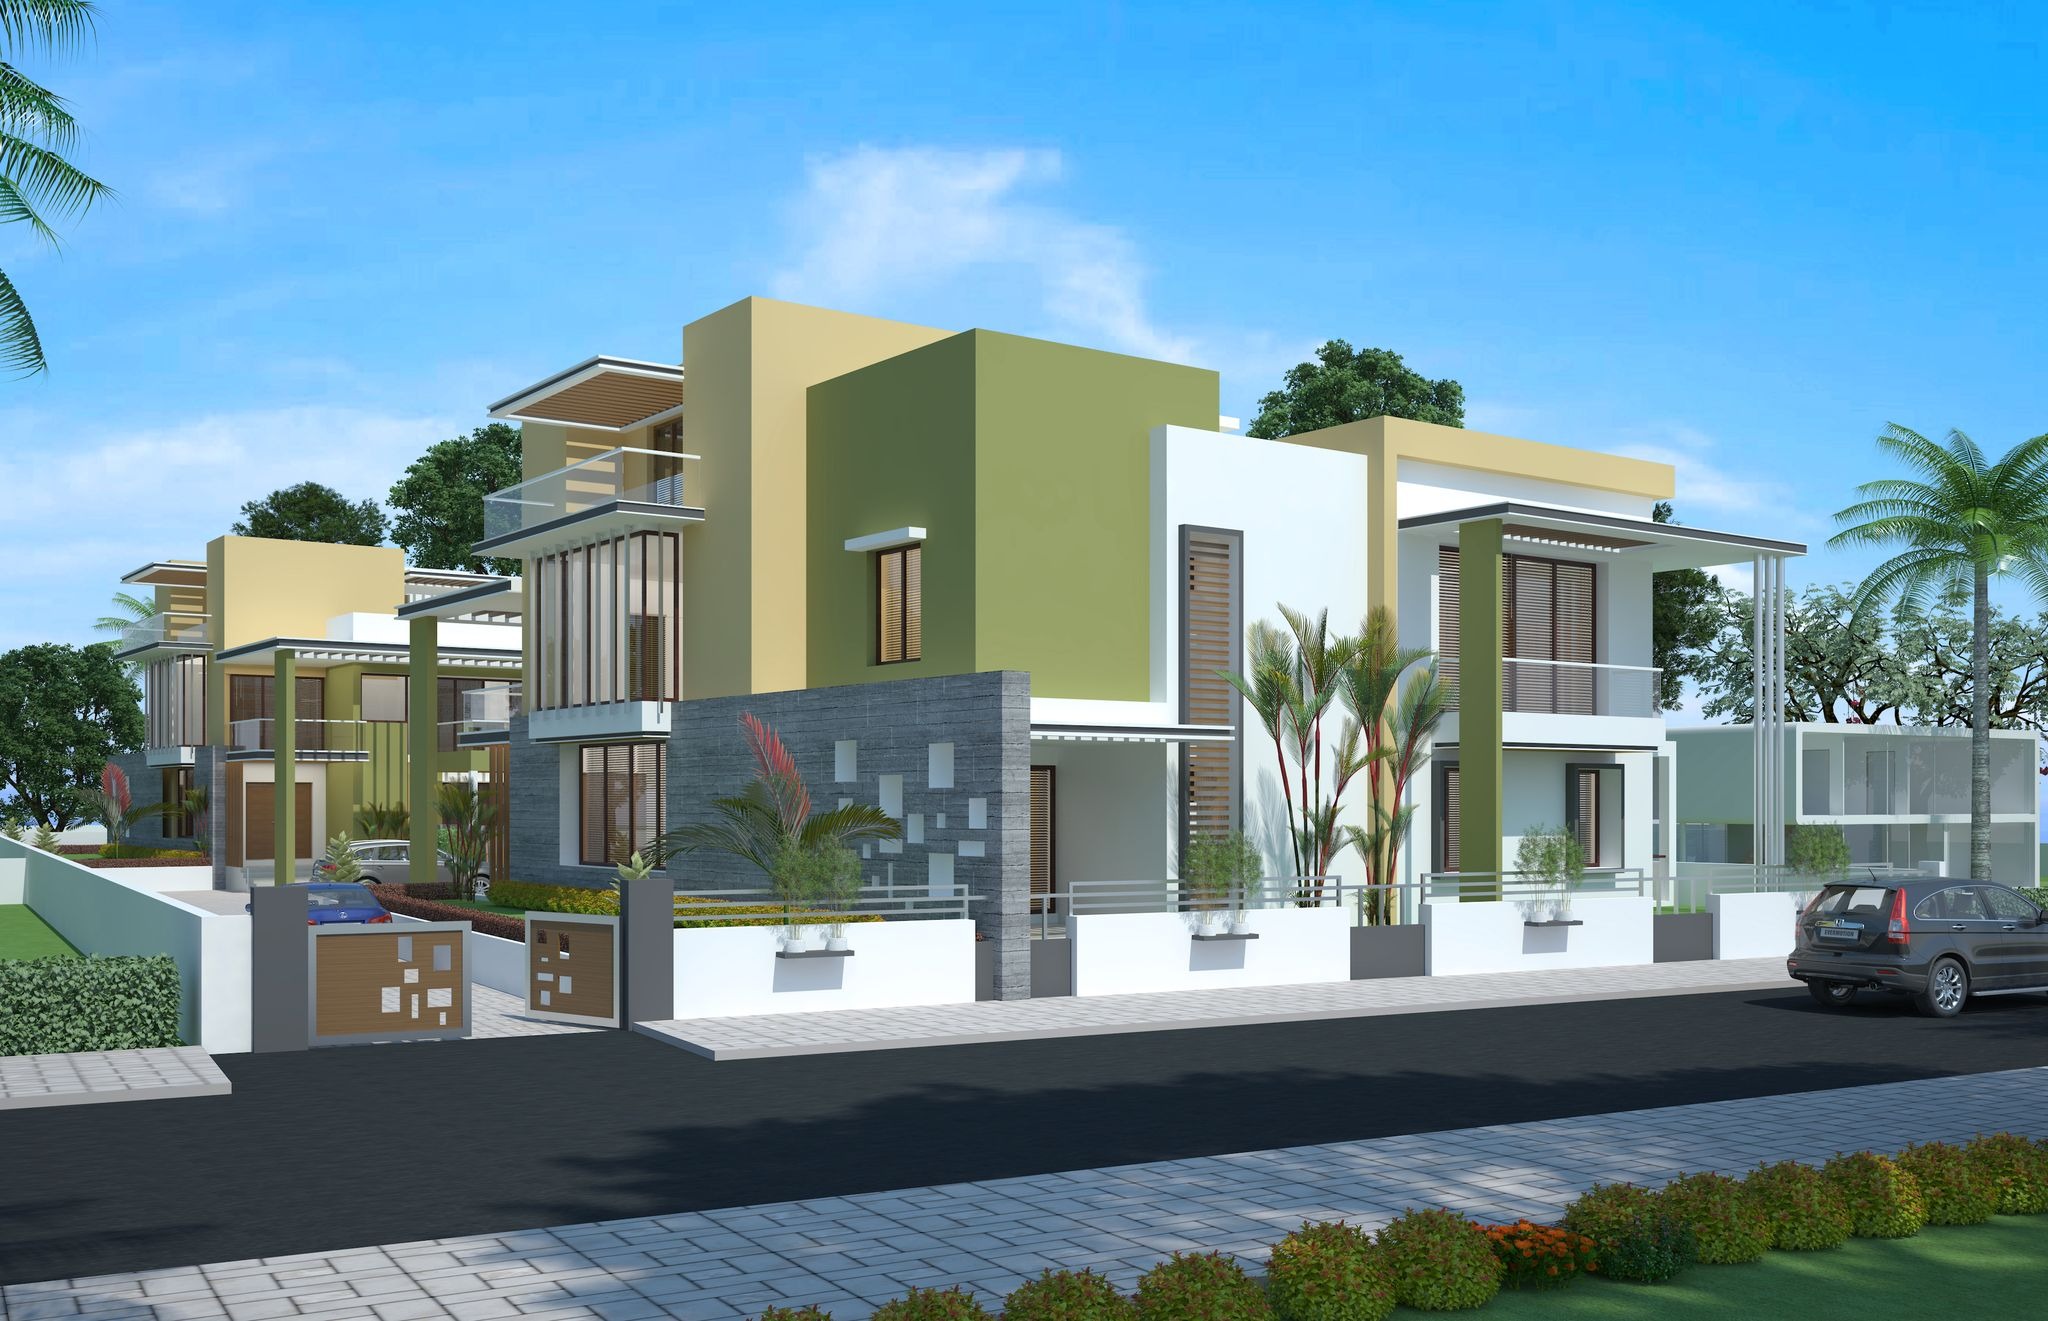 3d architectural visualization services India